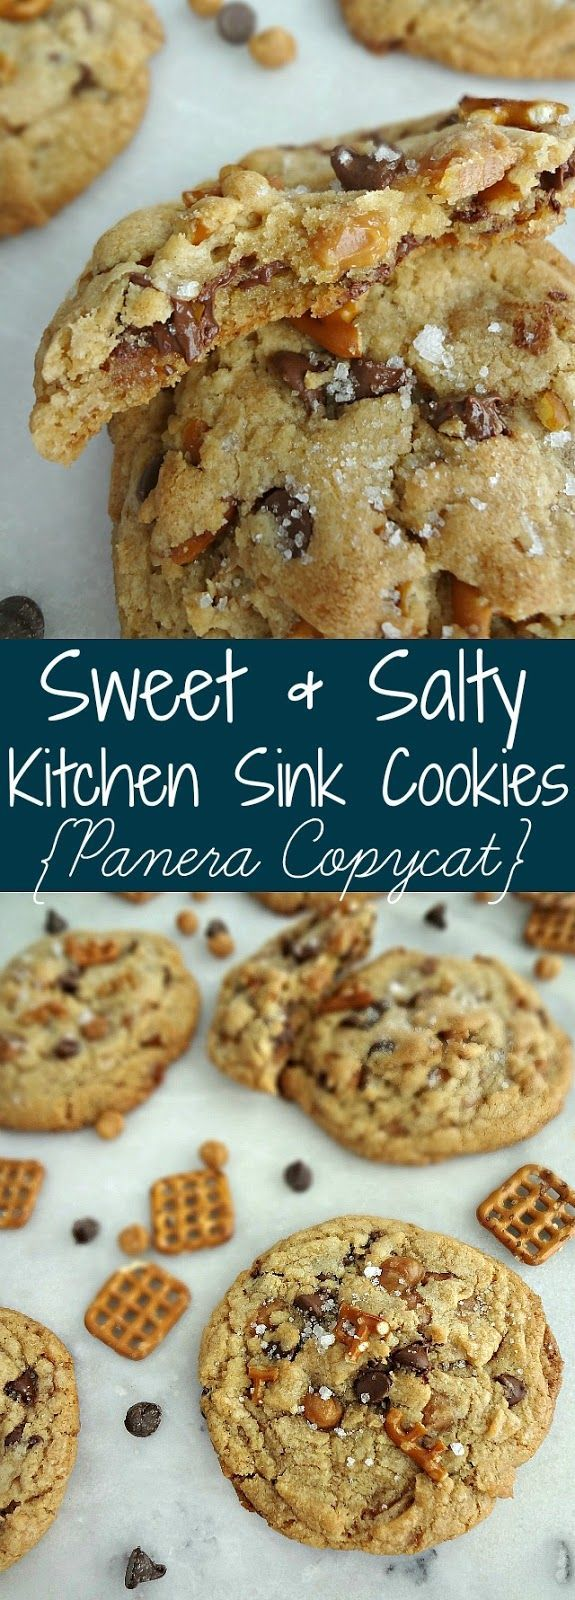 Sweet & Salty Kitchen Sink Cookies {Panera Copycat}-a recipe for giant, chewy, cookies with pretzels, caramel bits, and chocolate chips. SO GOOD!